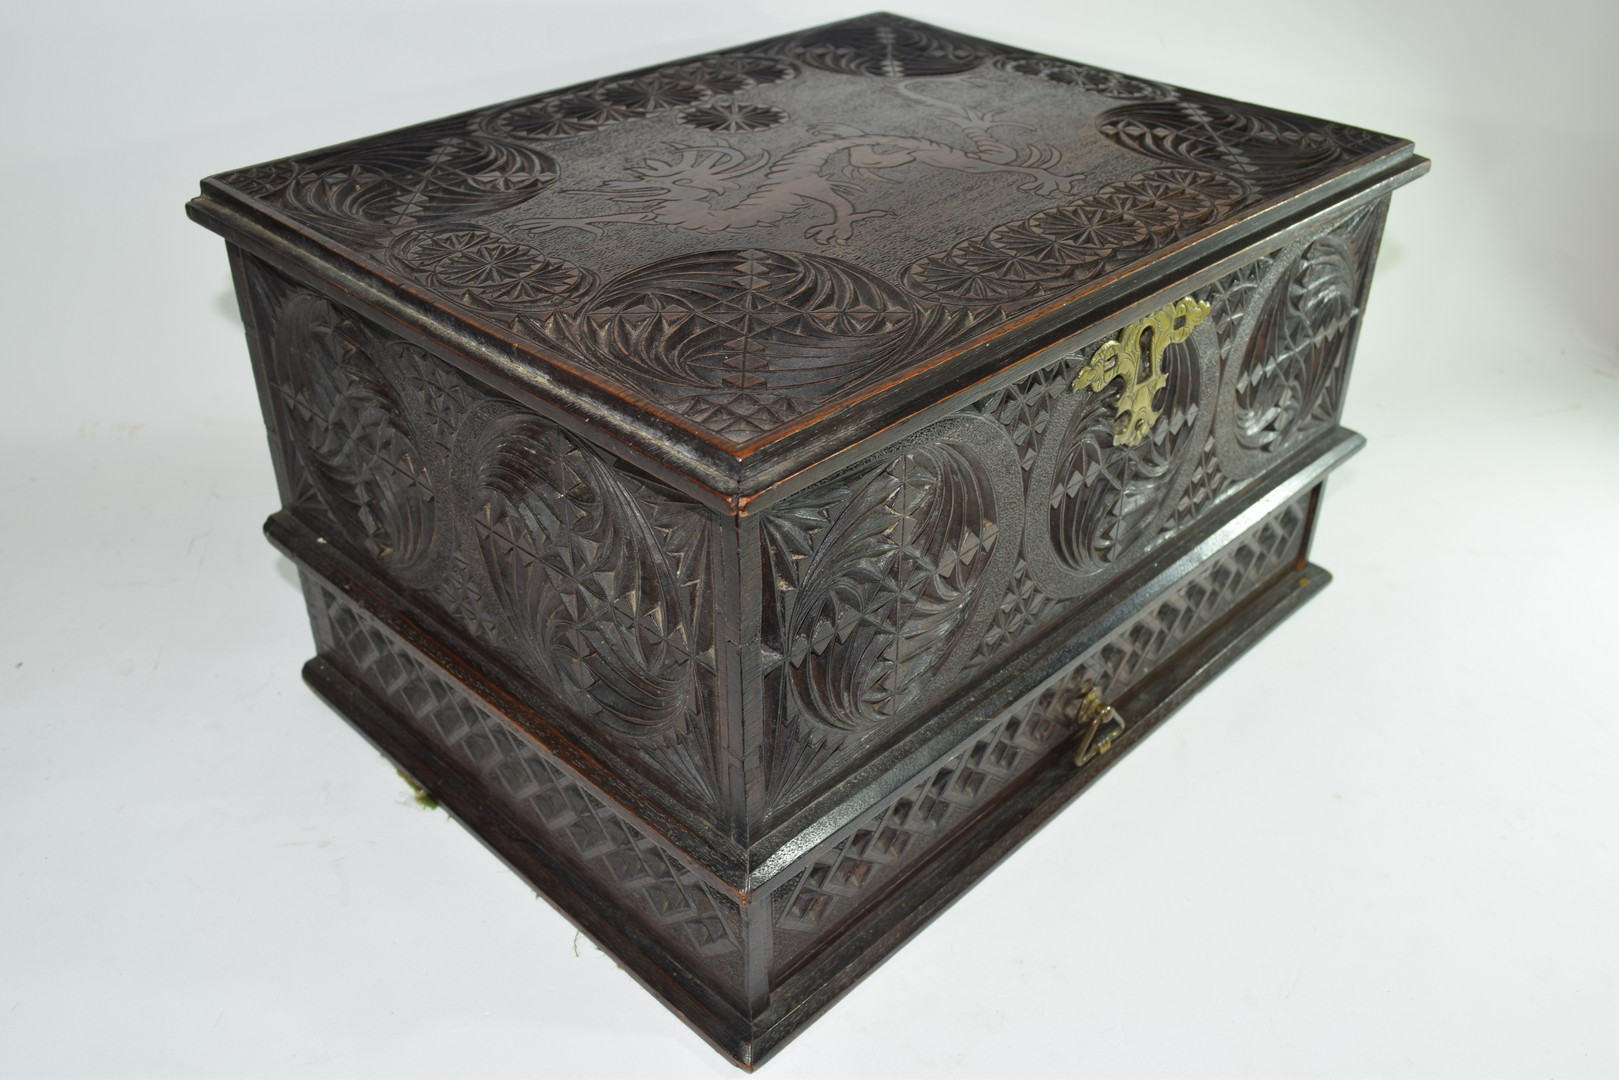 Late 19th/early 20th century Far Eastern table top box - Image 3 of 5